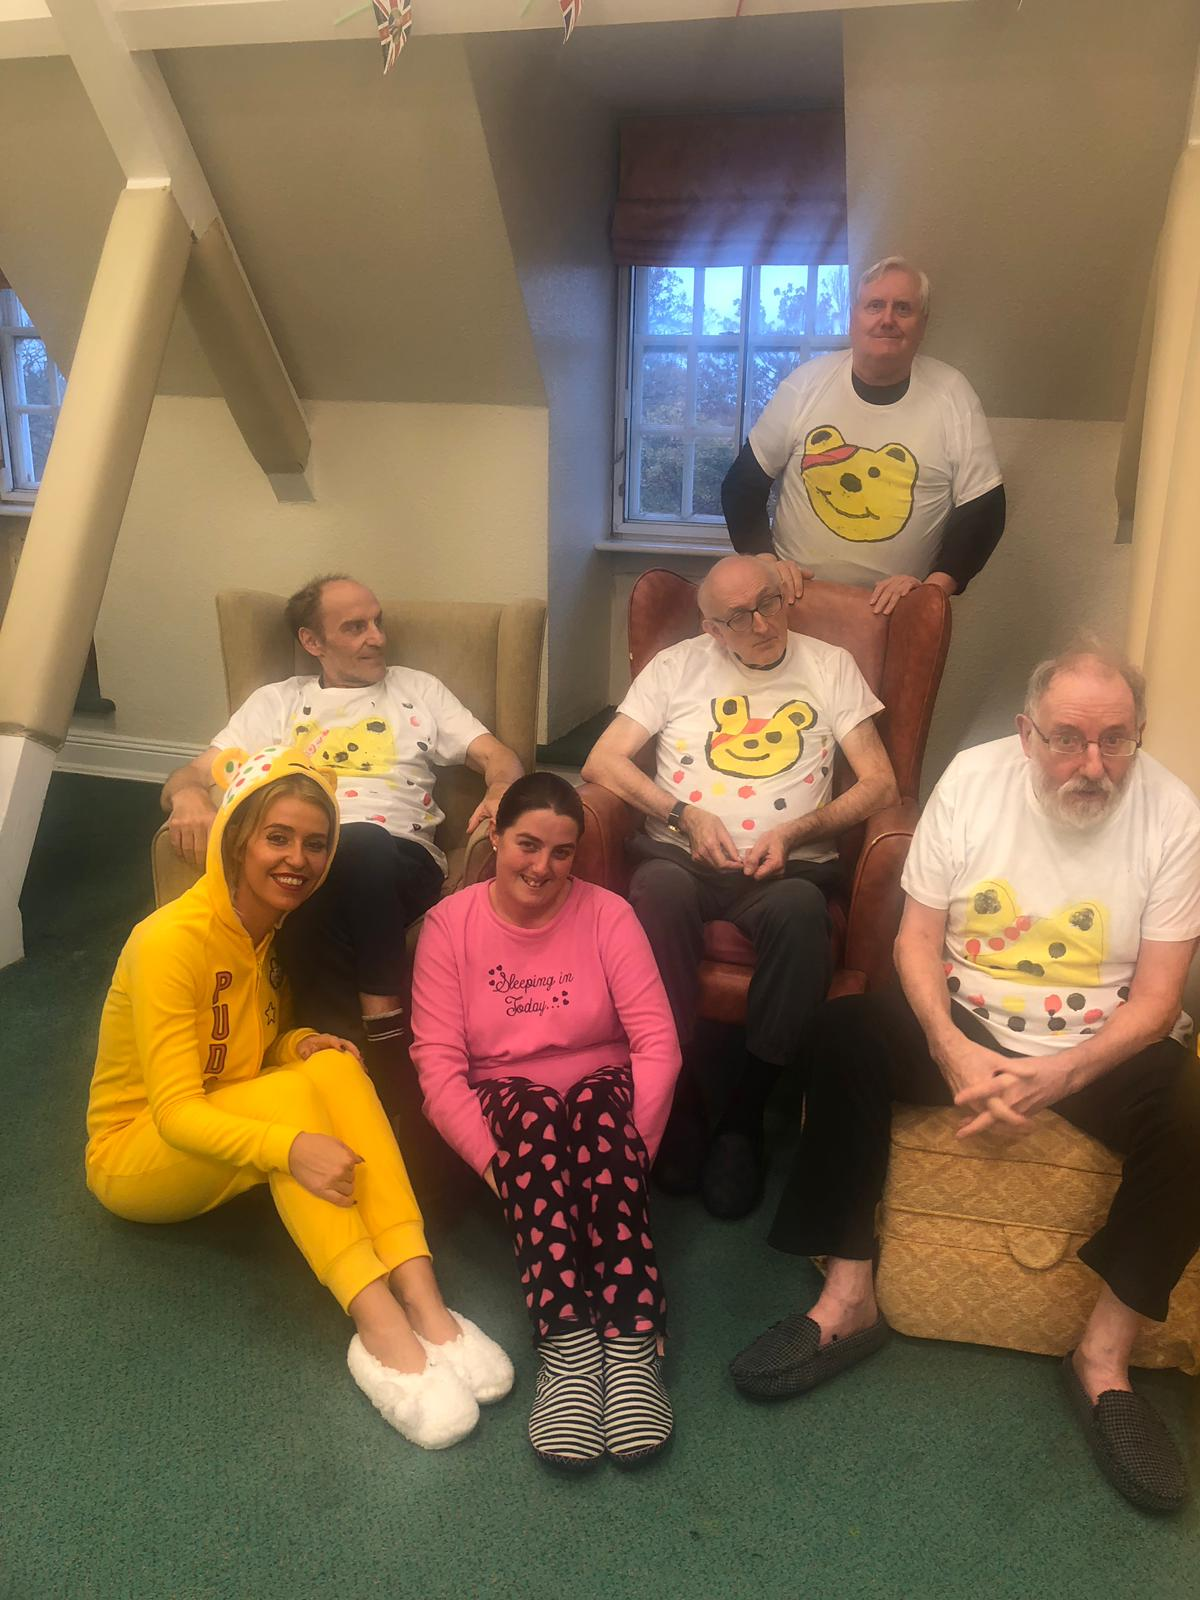 Children In Need 2: Key Healthcare is dedicated to caring for elderly residents in safe. We have multiple dementia care homes including our care home middlesbrough, our care home St. Helen and care home saltburn. We excel in monitoring and improving care levels.